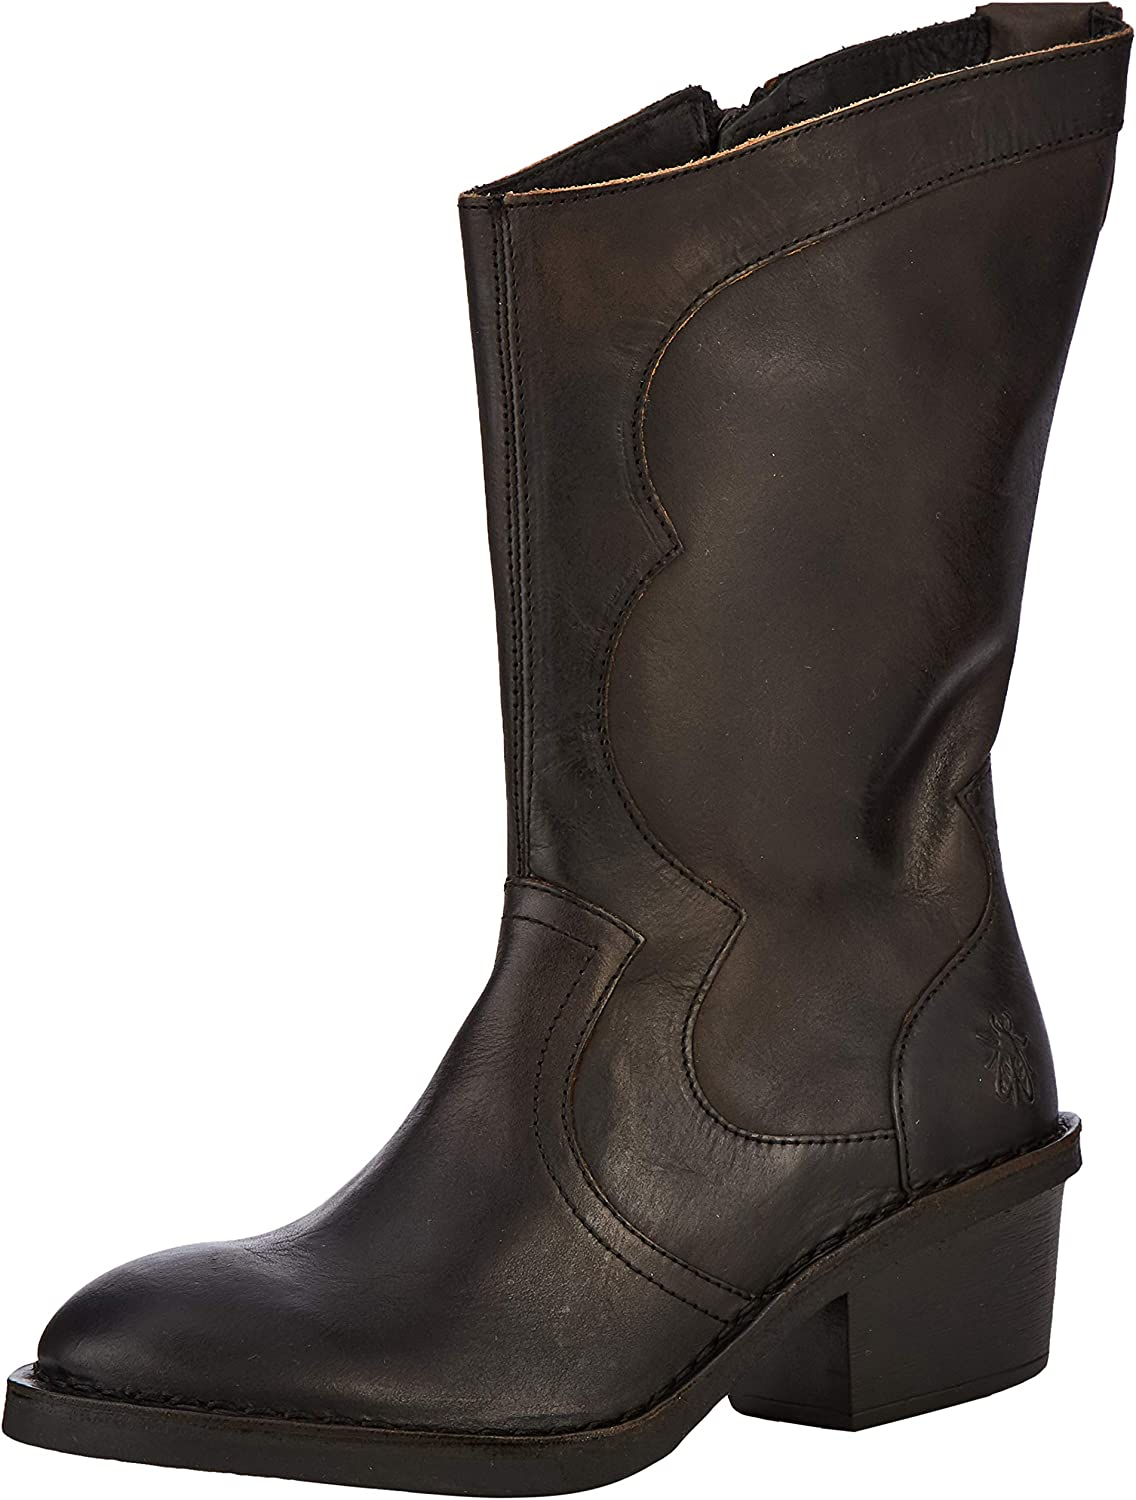 Fly London Dune010fly, Botas Camperas para Mujer